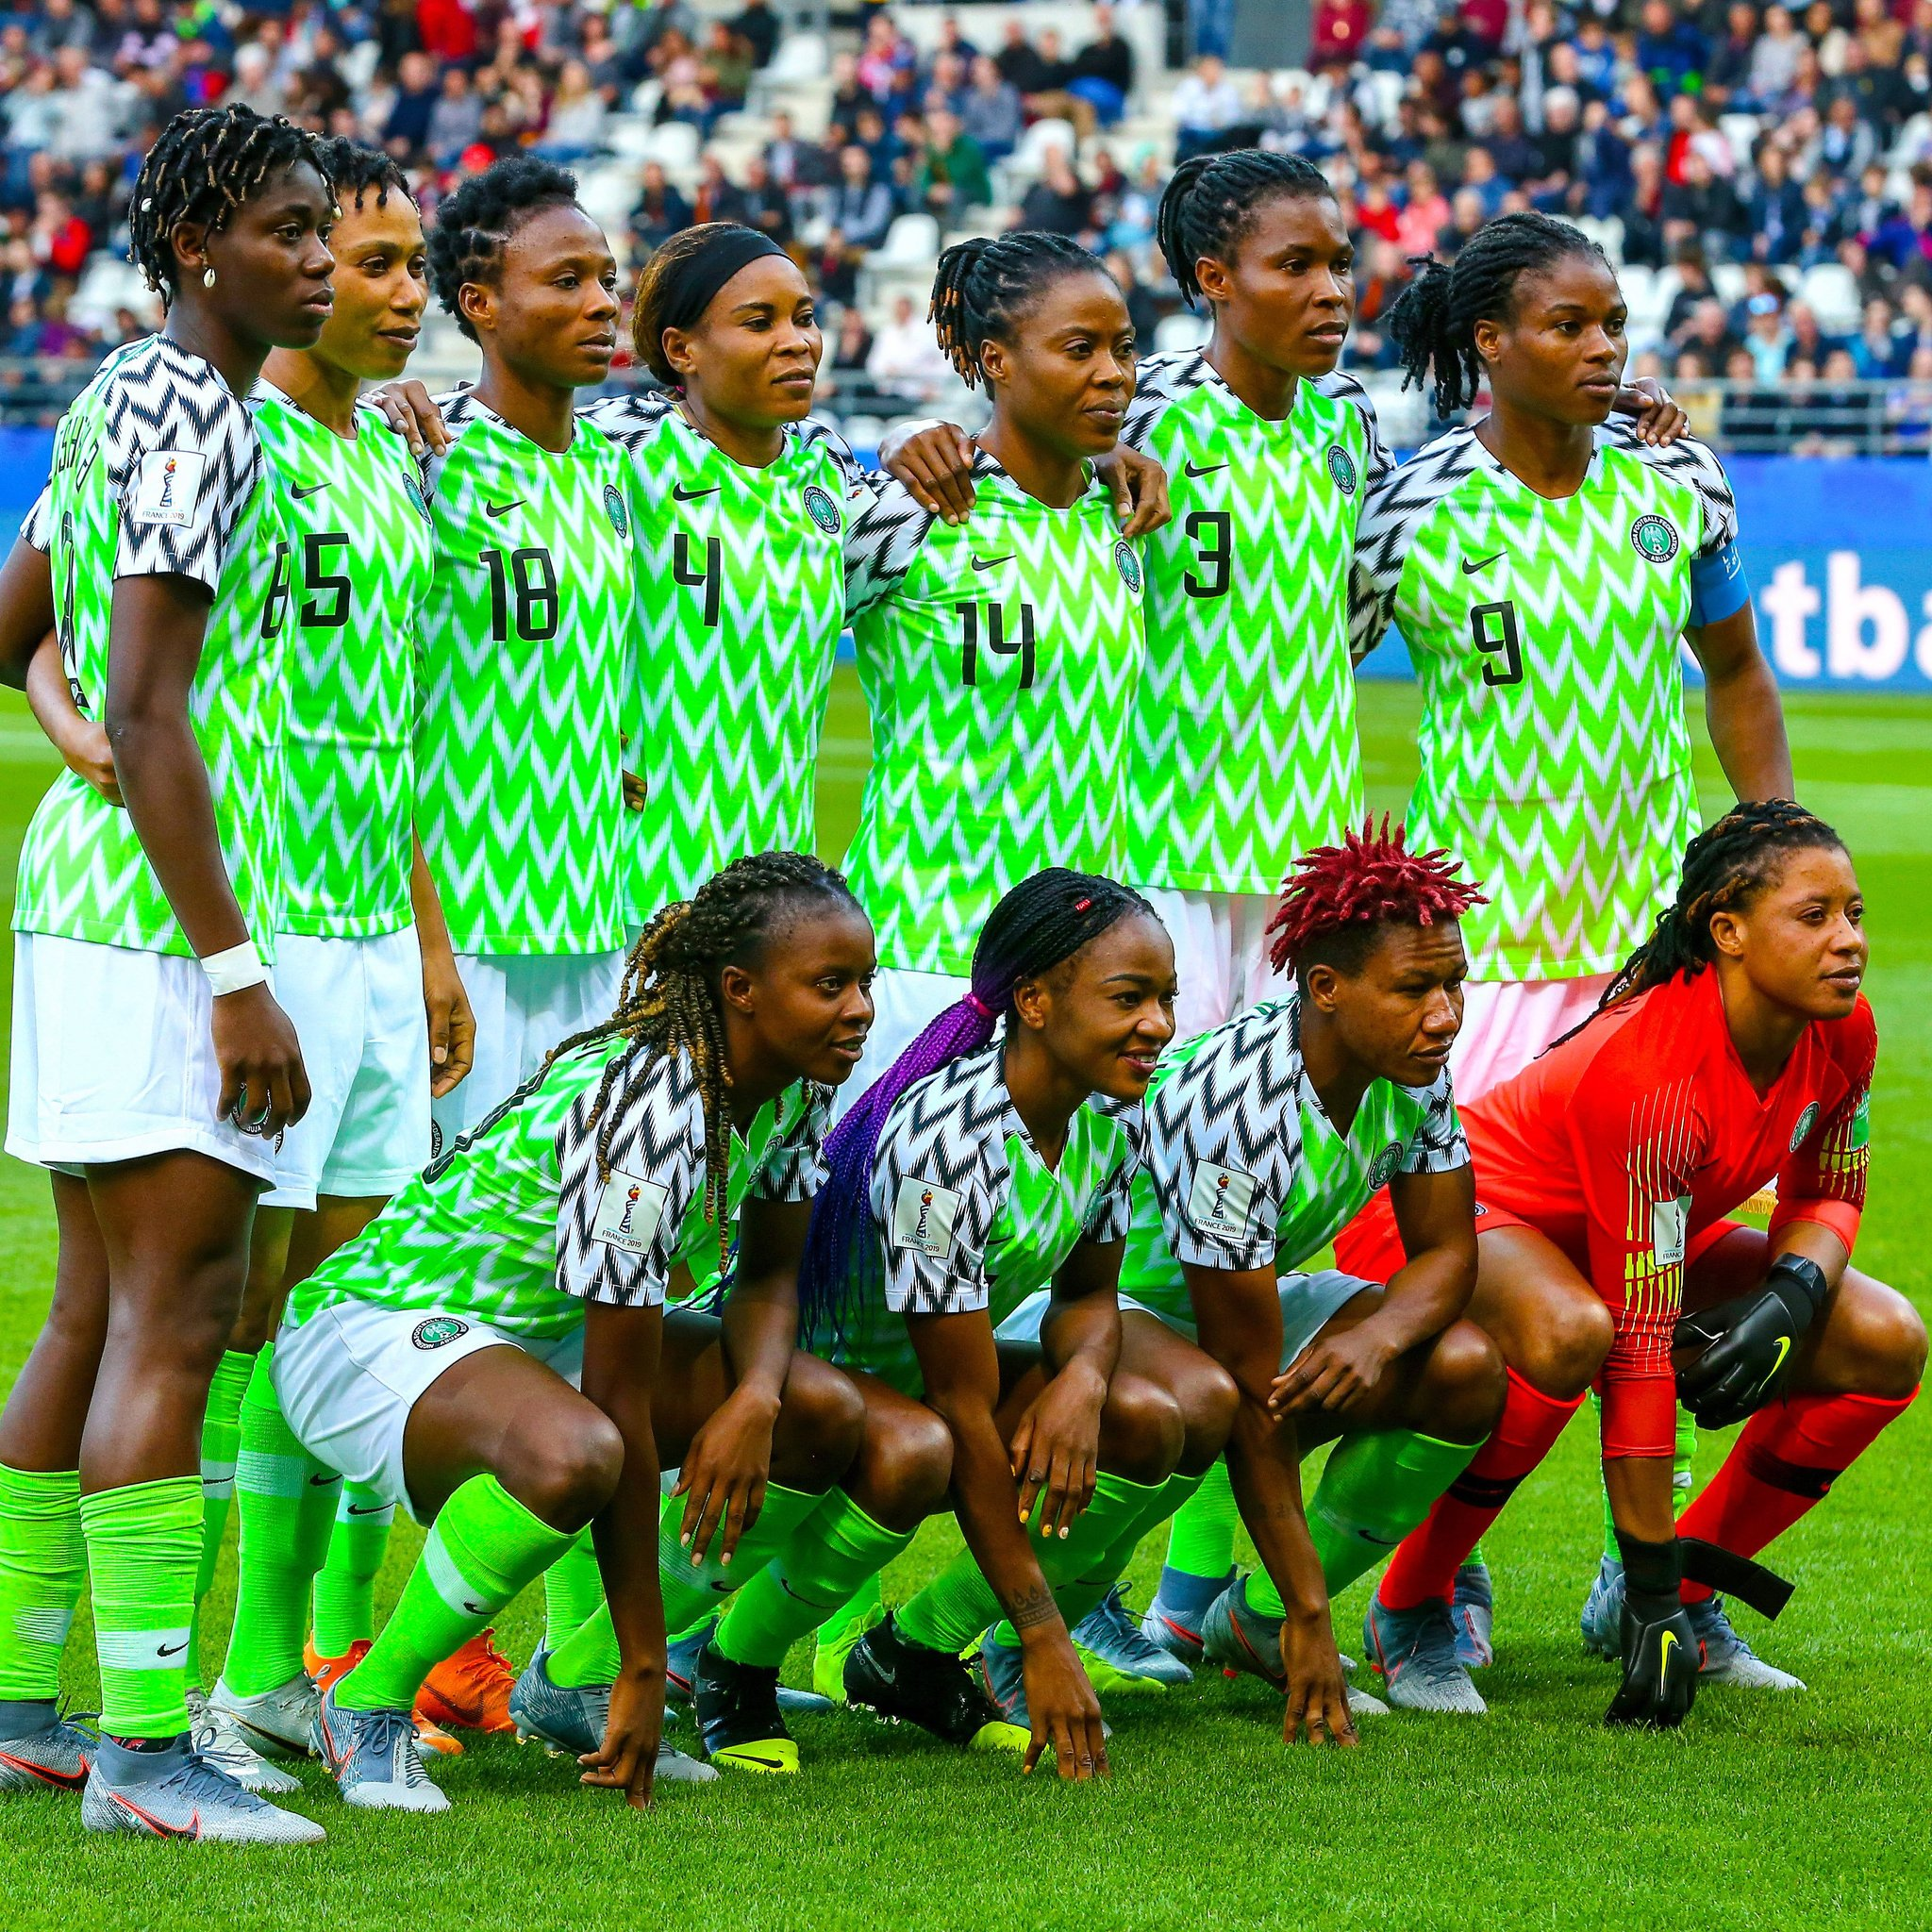 falcons pip algeria - FIFA KNOCKS FALCONS OVER POOR SHOWING IN FRANCE